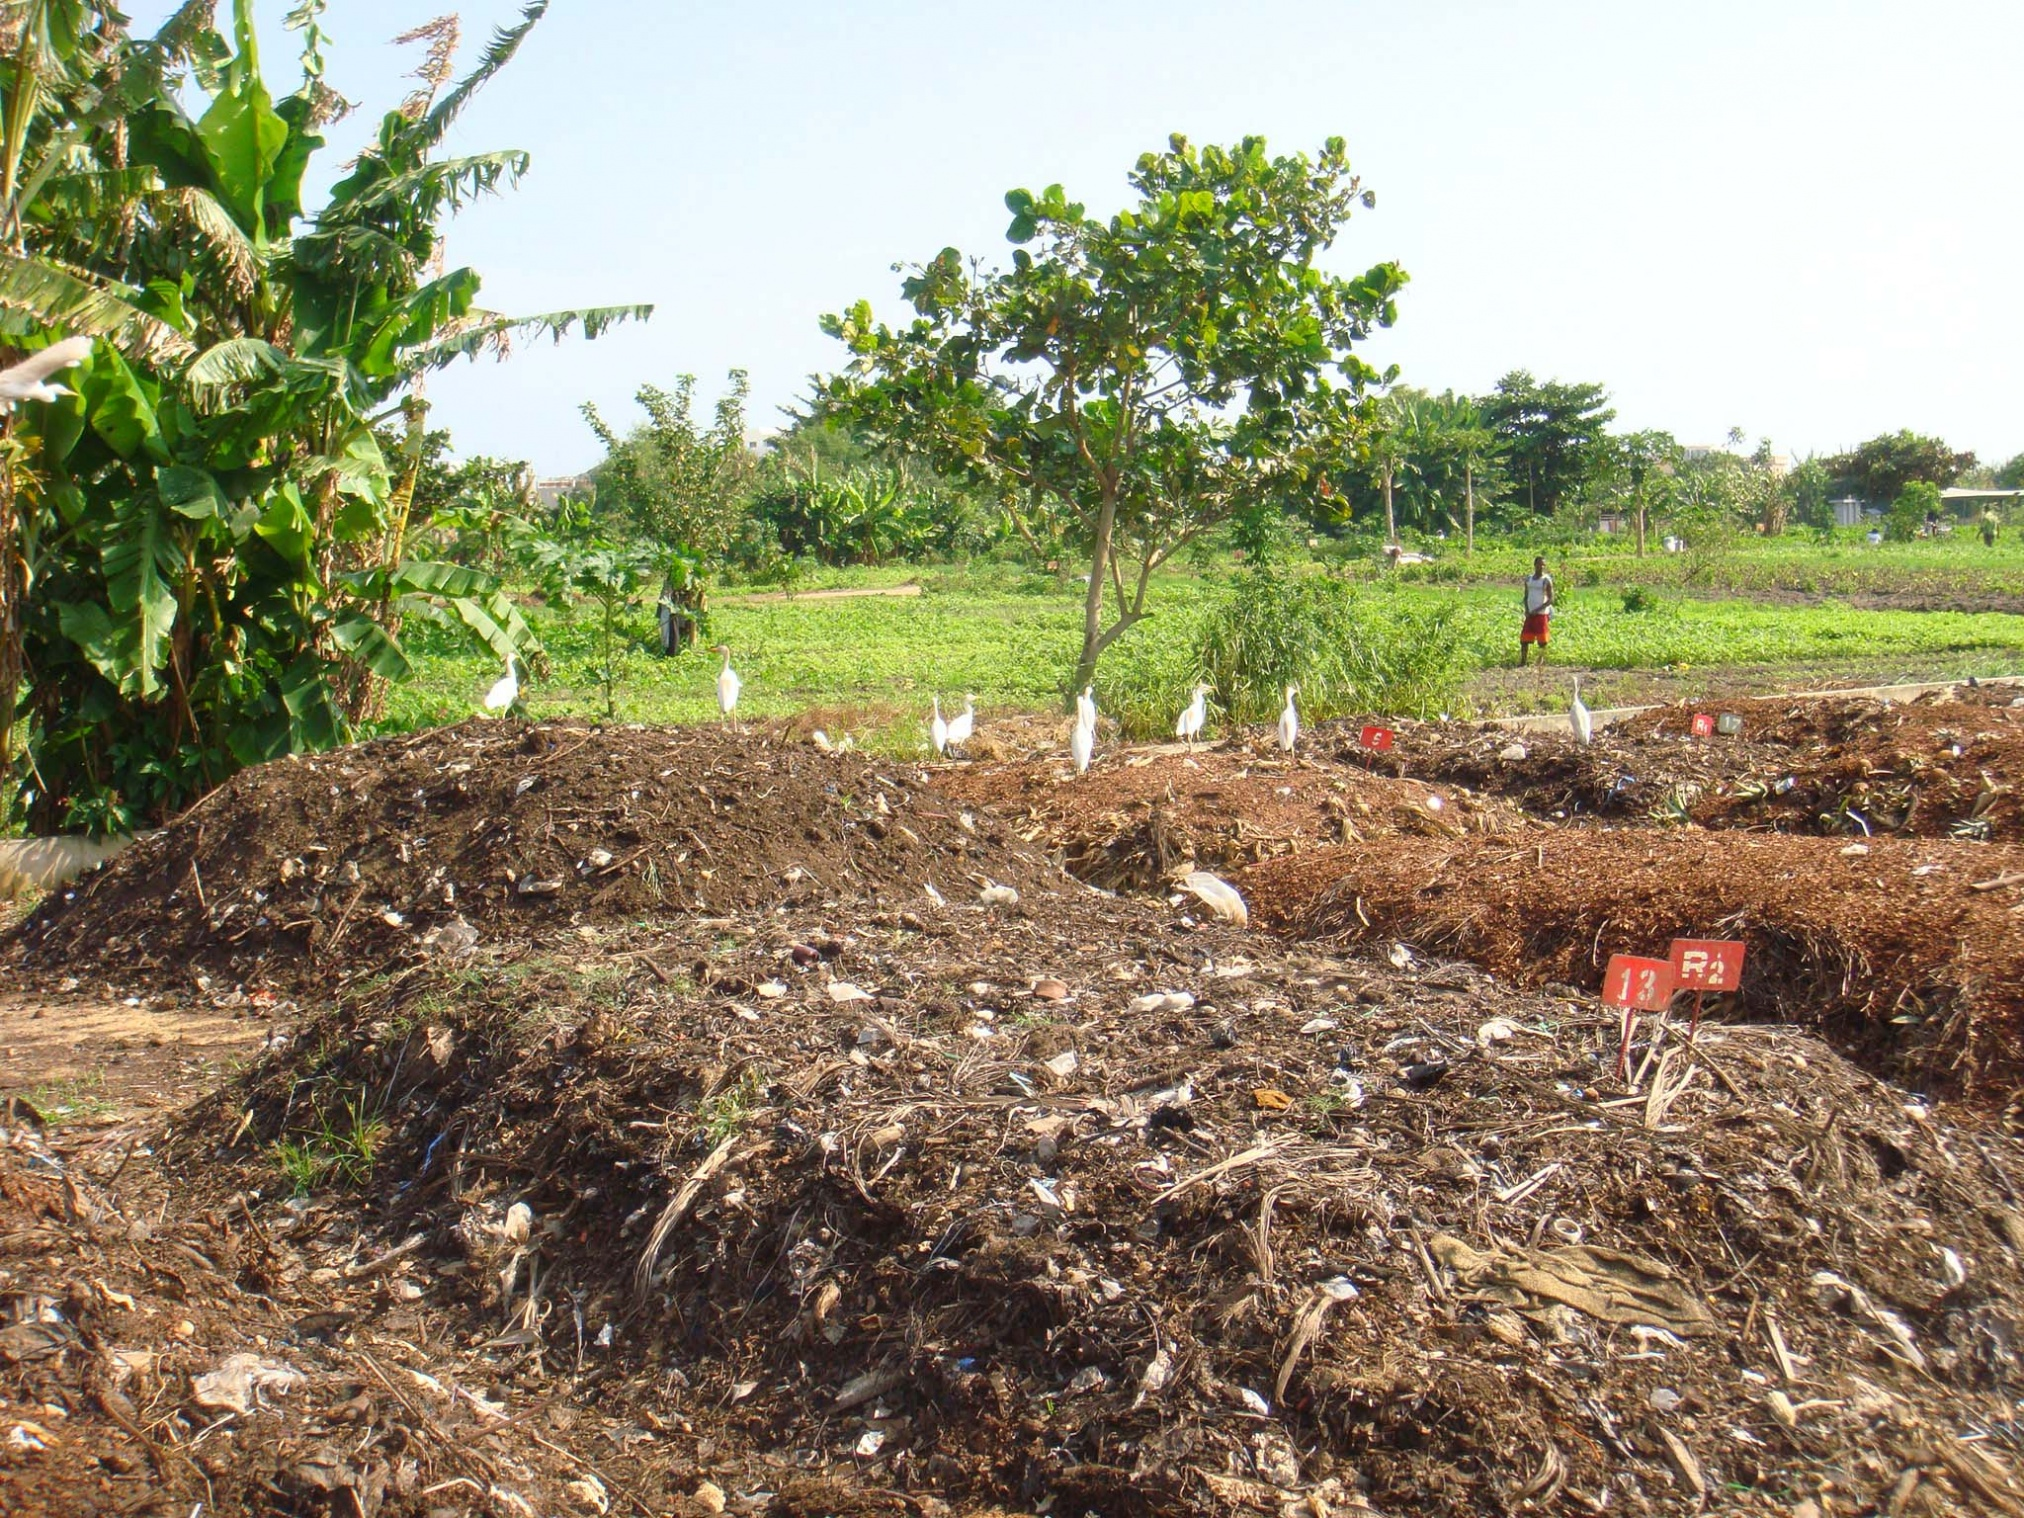 Compost_before_sifting_(there_is_other_material_in_it_for_example_plastic_waste)._(5817733310).jpg